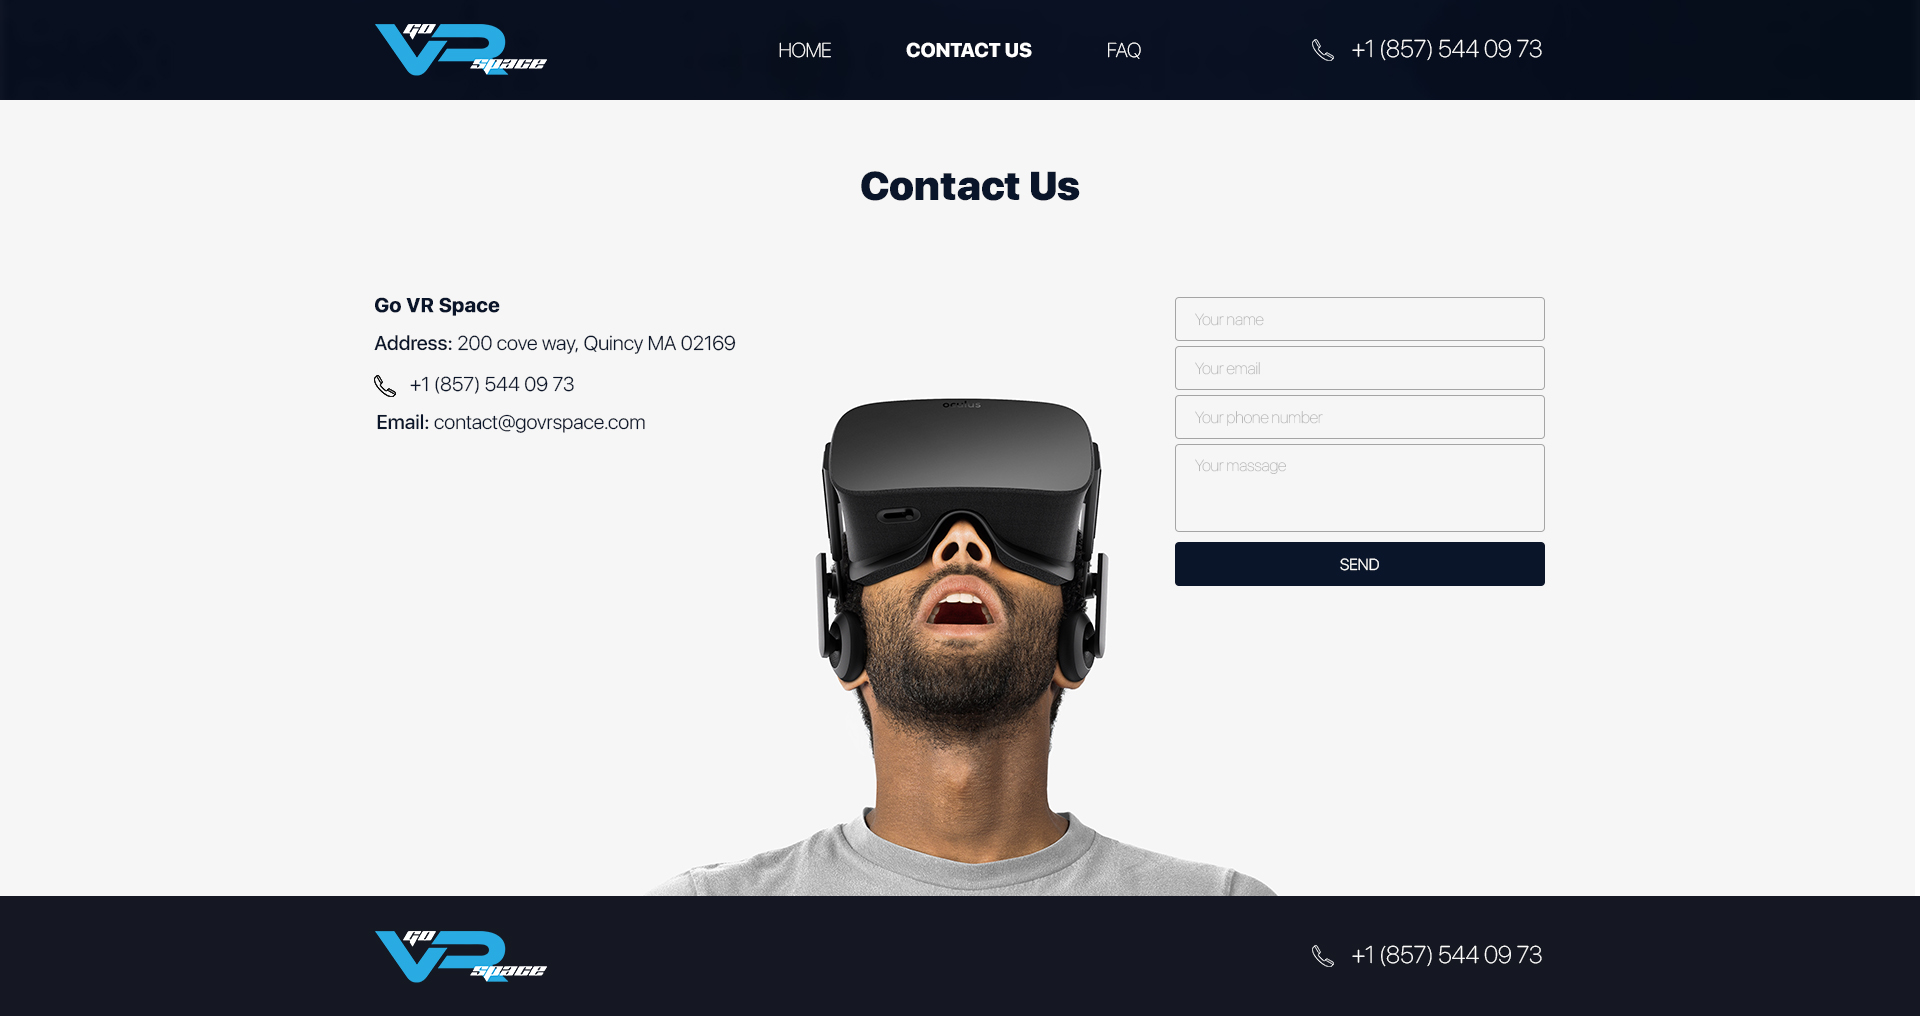 Go VR Space